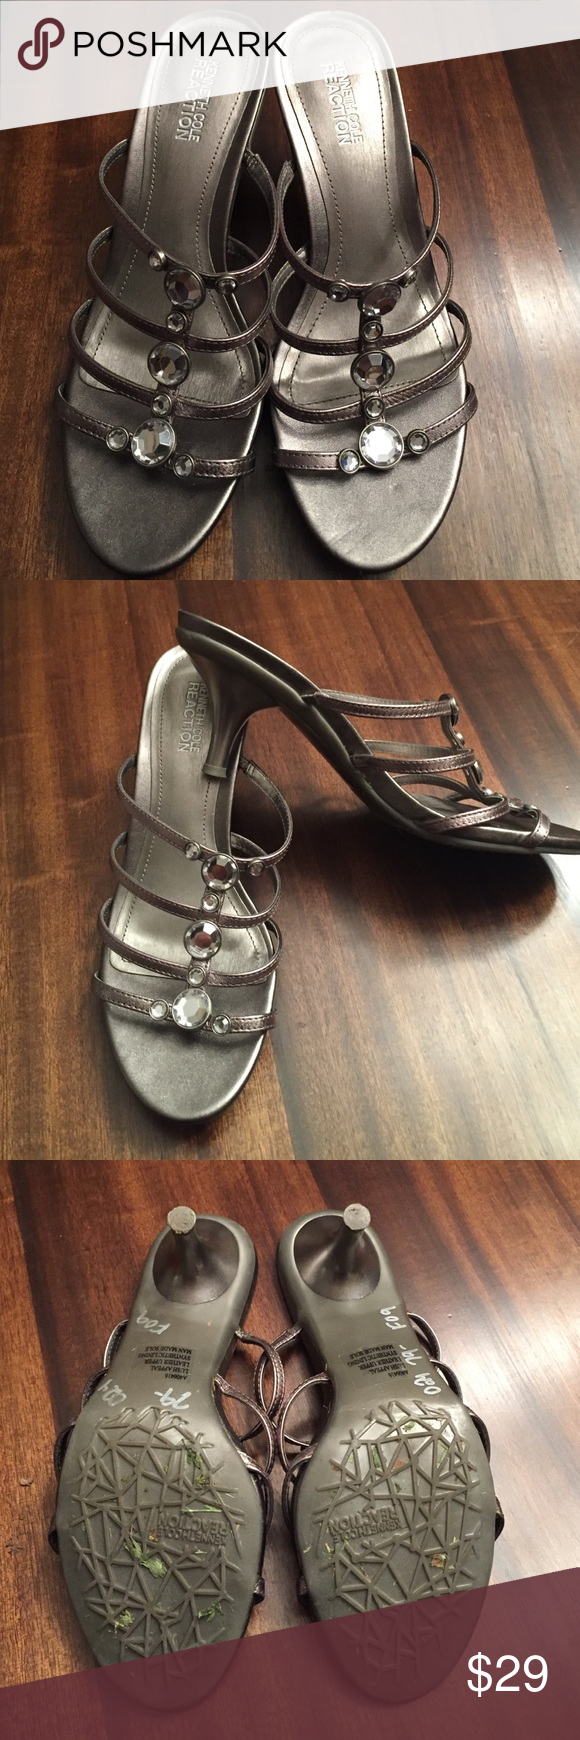 ce6dcb5ddf9 Kenneth Cole reaction pewter sandals 7m Kenneth Cole Reaction pewter silver  sandals size 7m these were